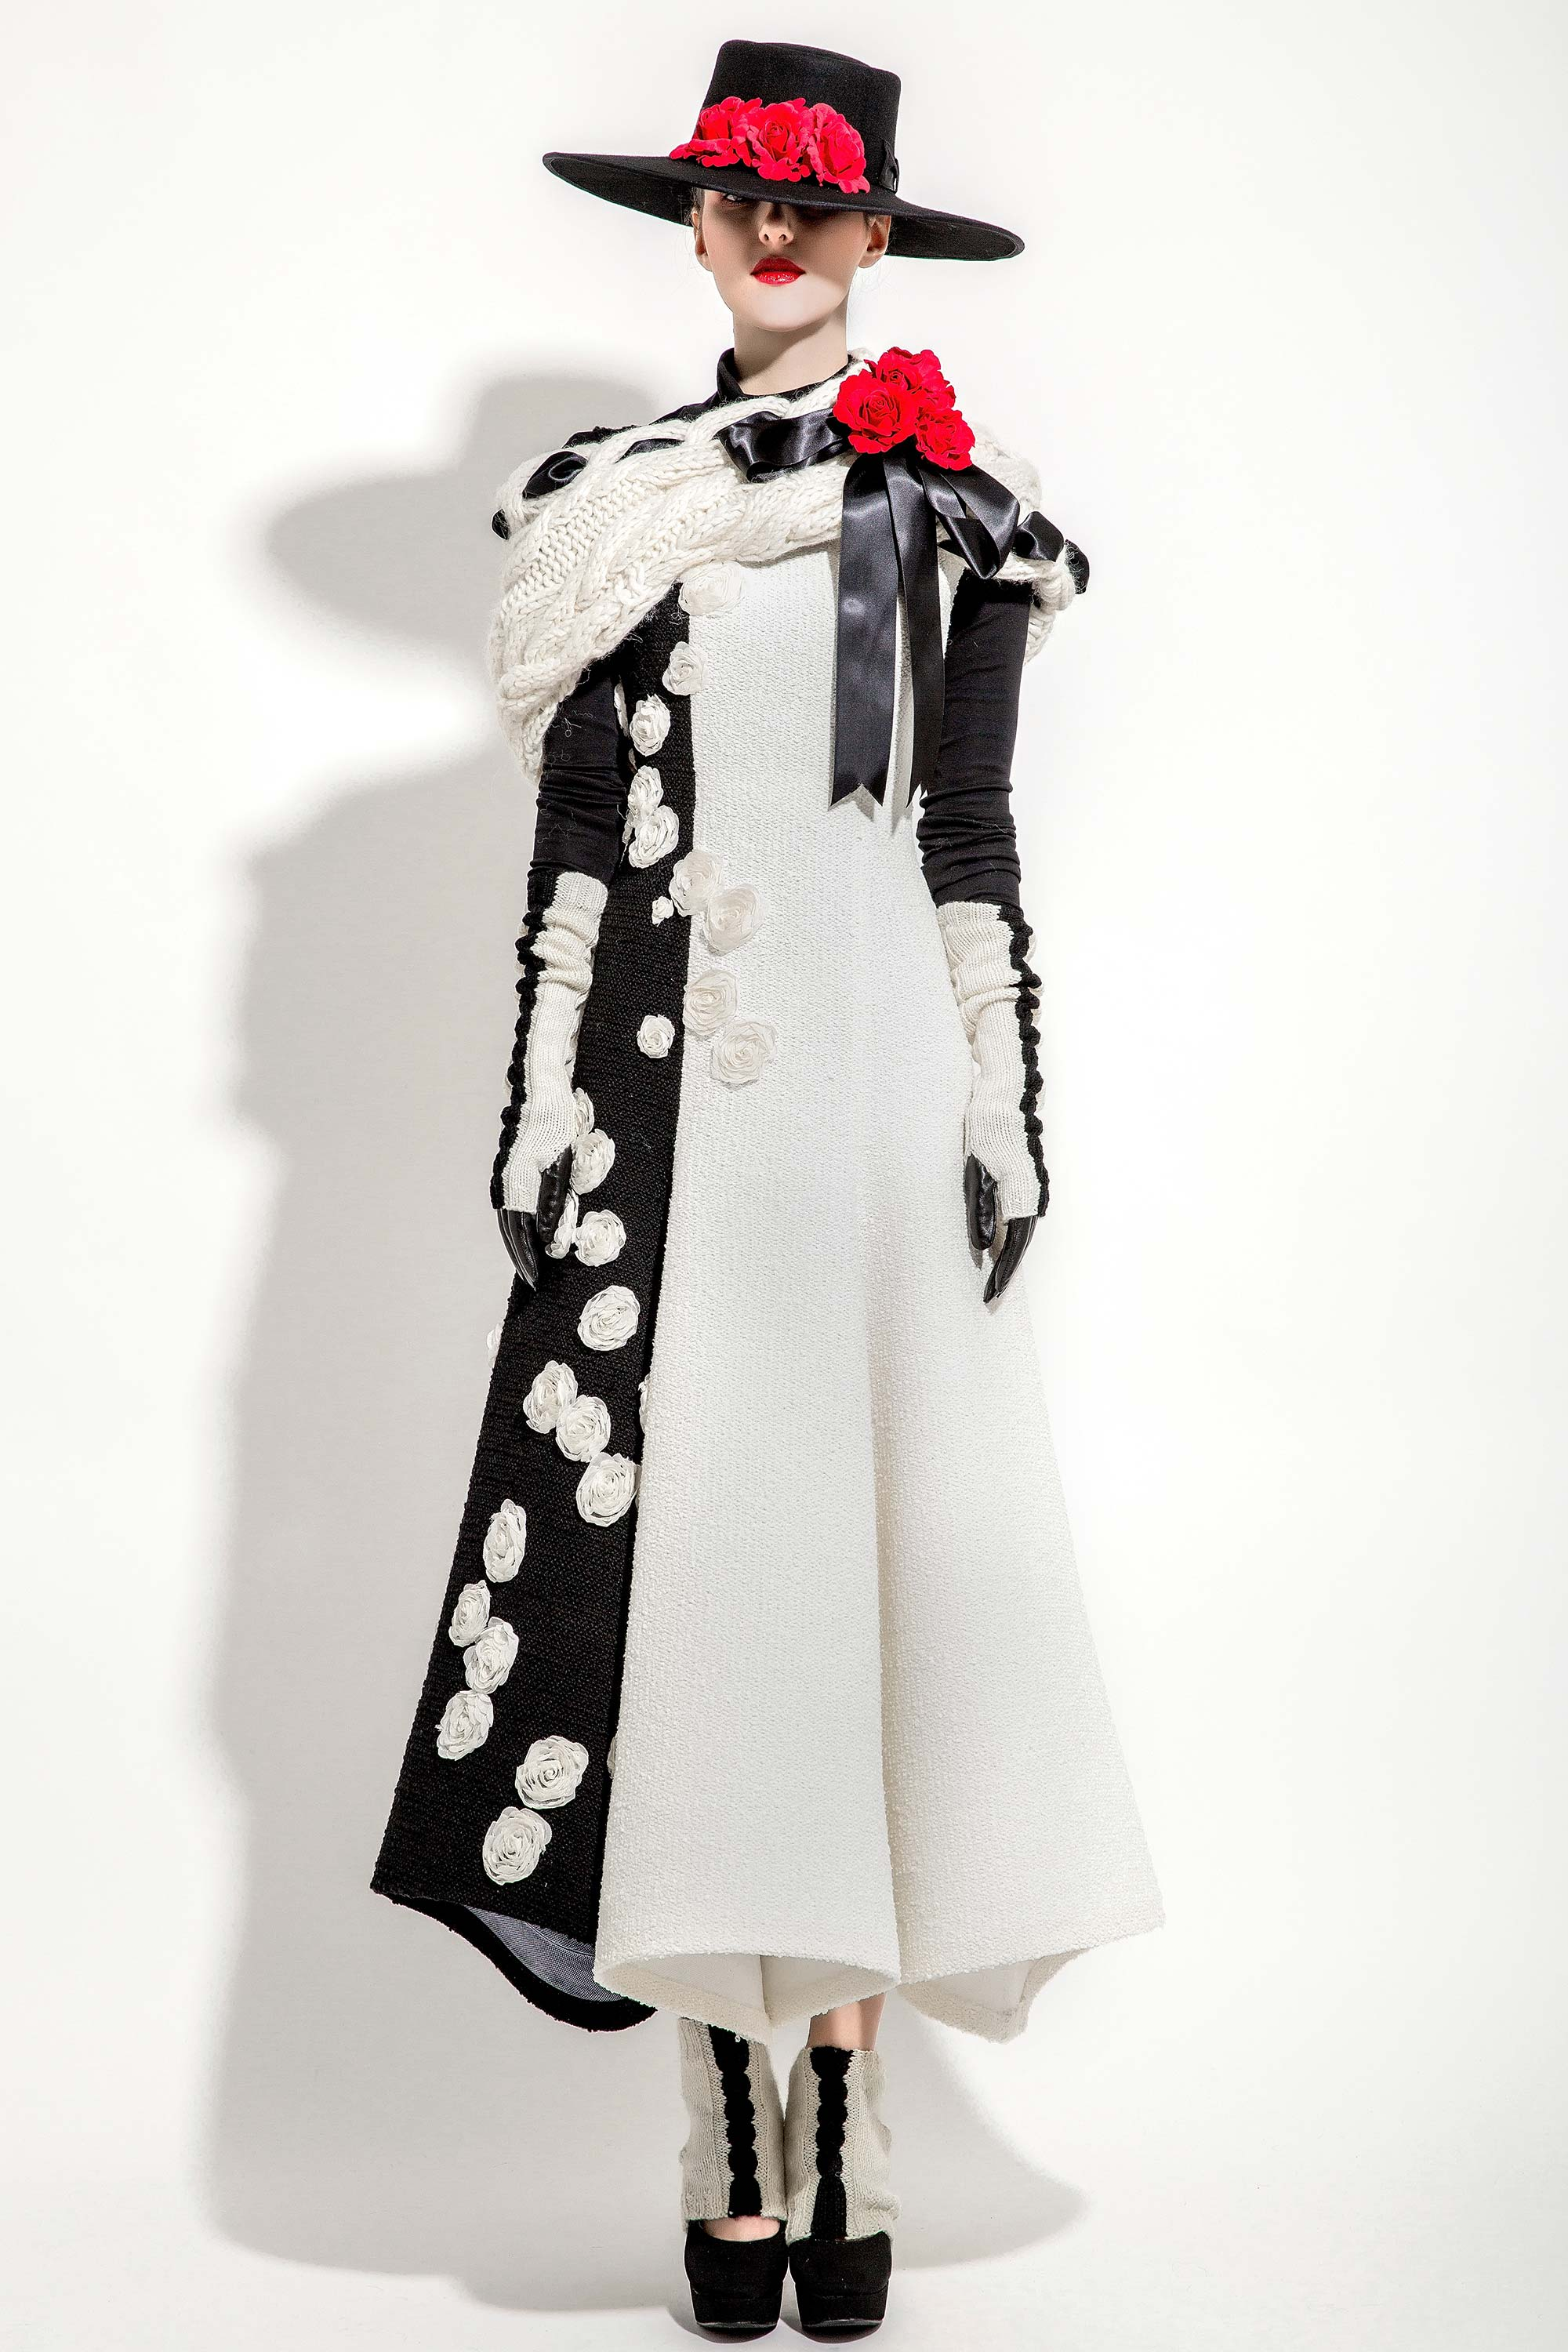 3D Rosettes Embroidered Wool Knitted Dress, Black/Cream